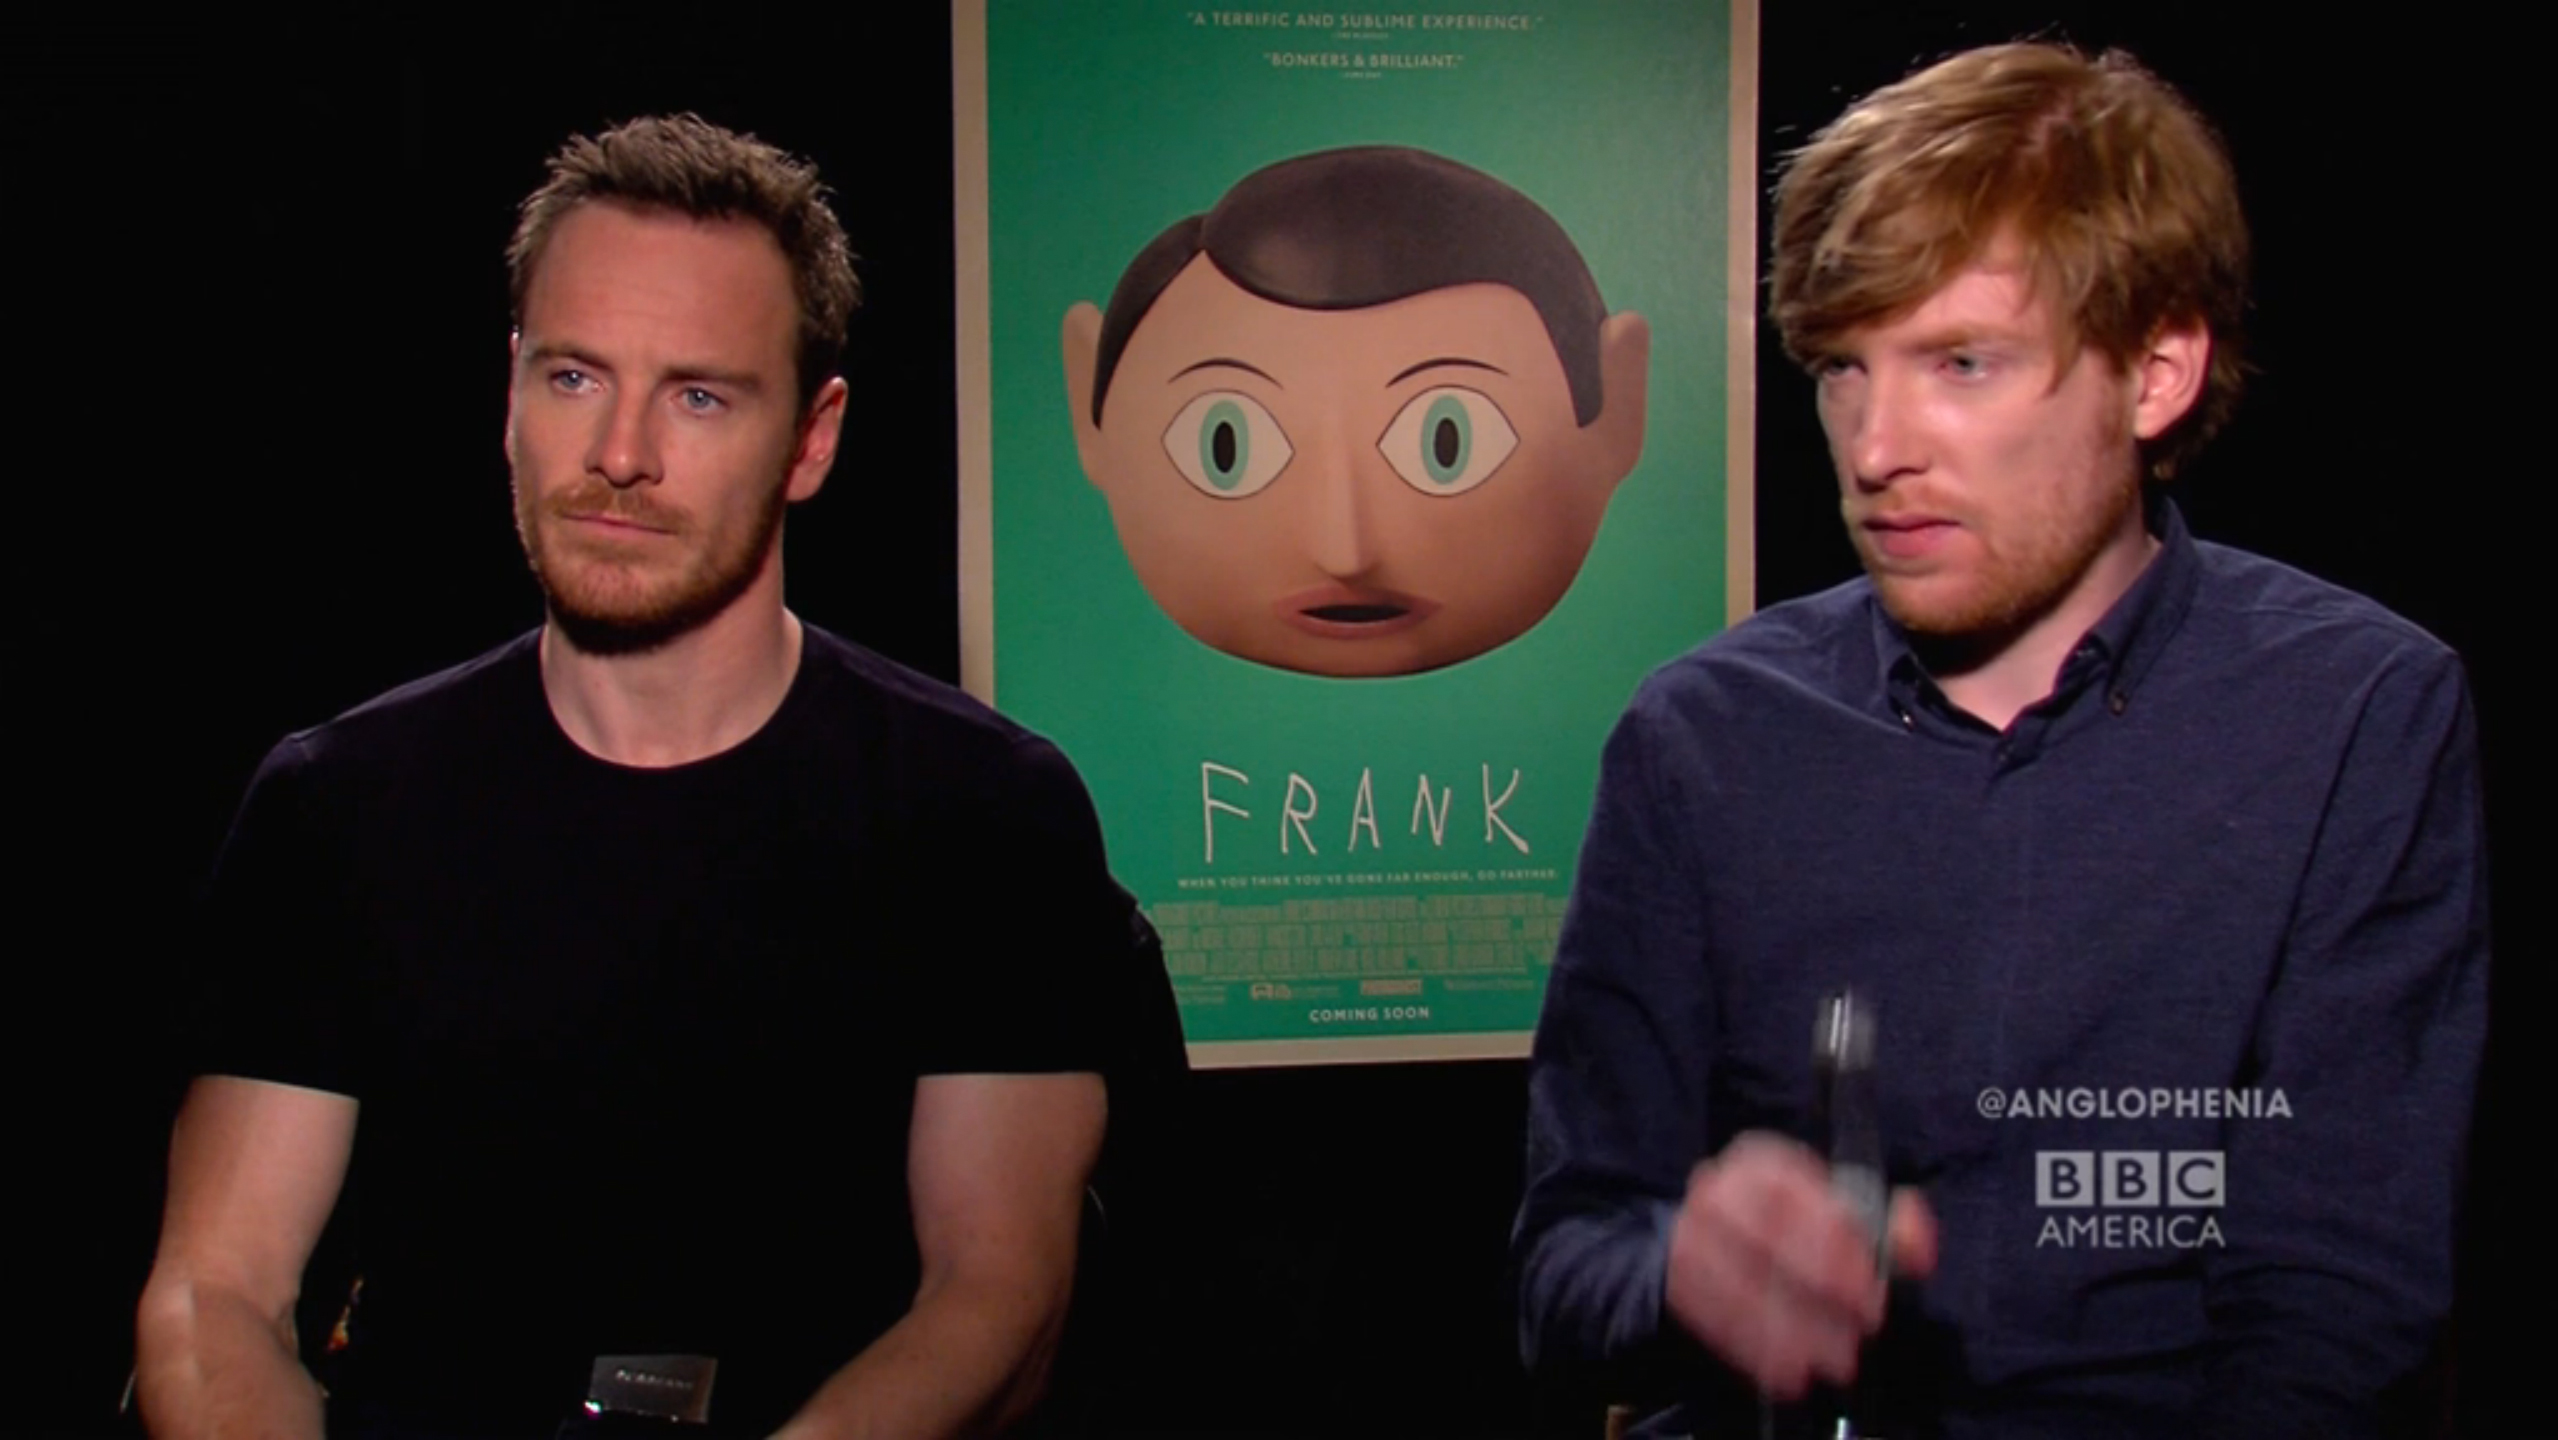 Michael Fassbender, Domhnall Gleeson Catch the Giggles